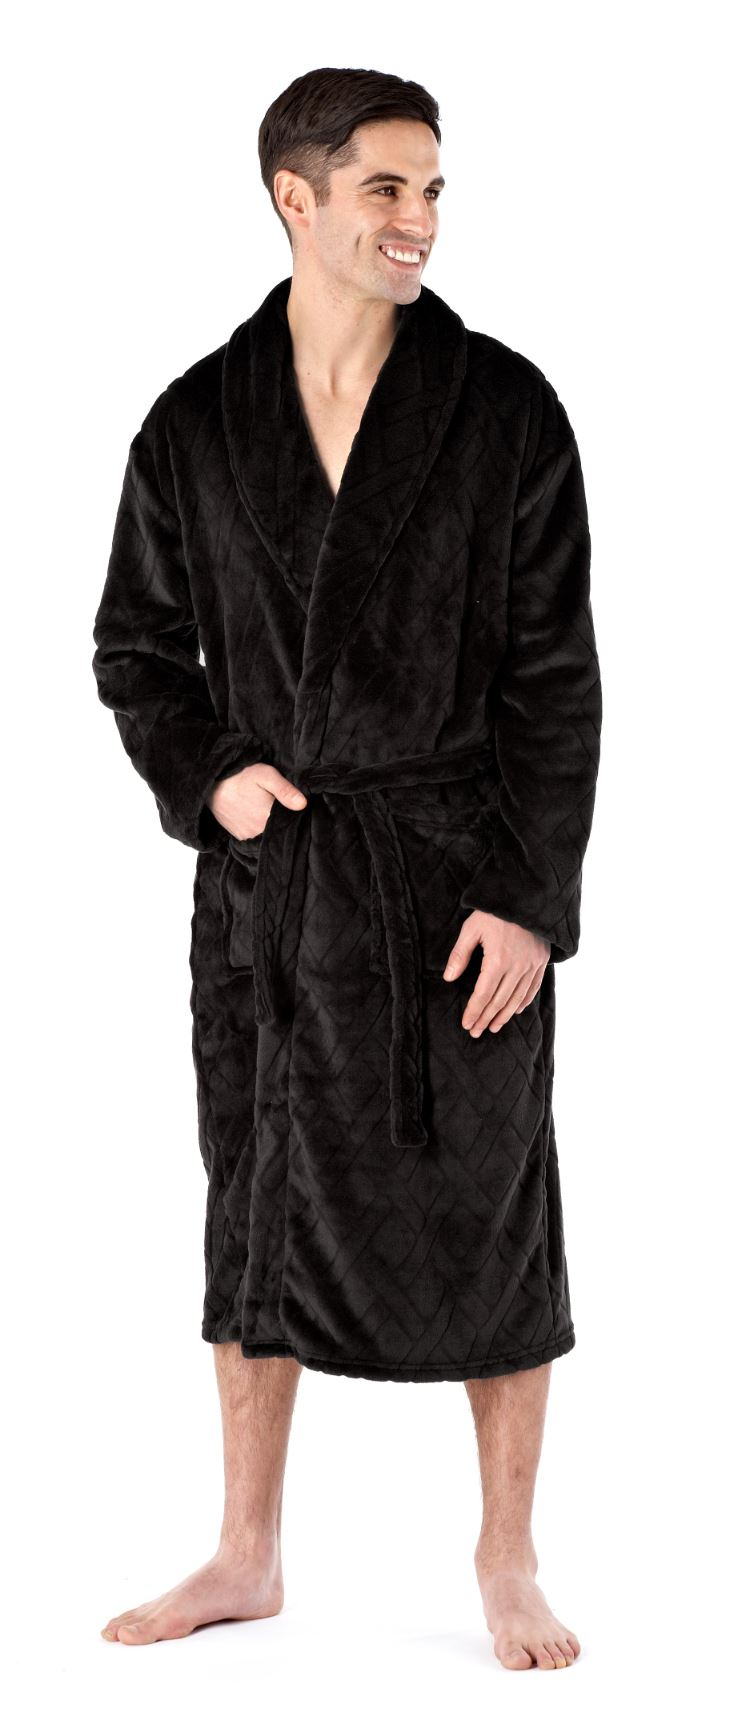 Mens Deluxe Luxury Dressing Gown Robe Bathrobe Soft Winter Warm ...